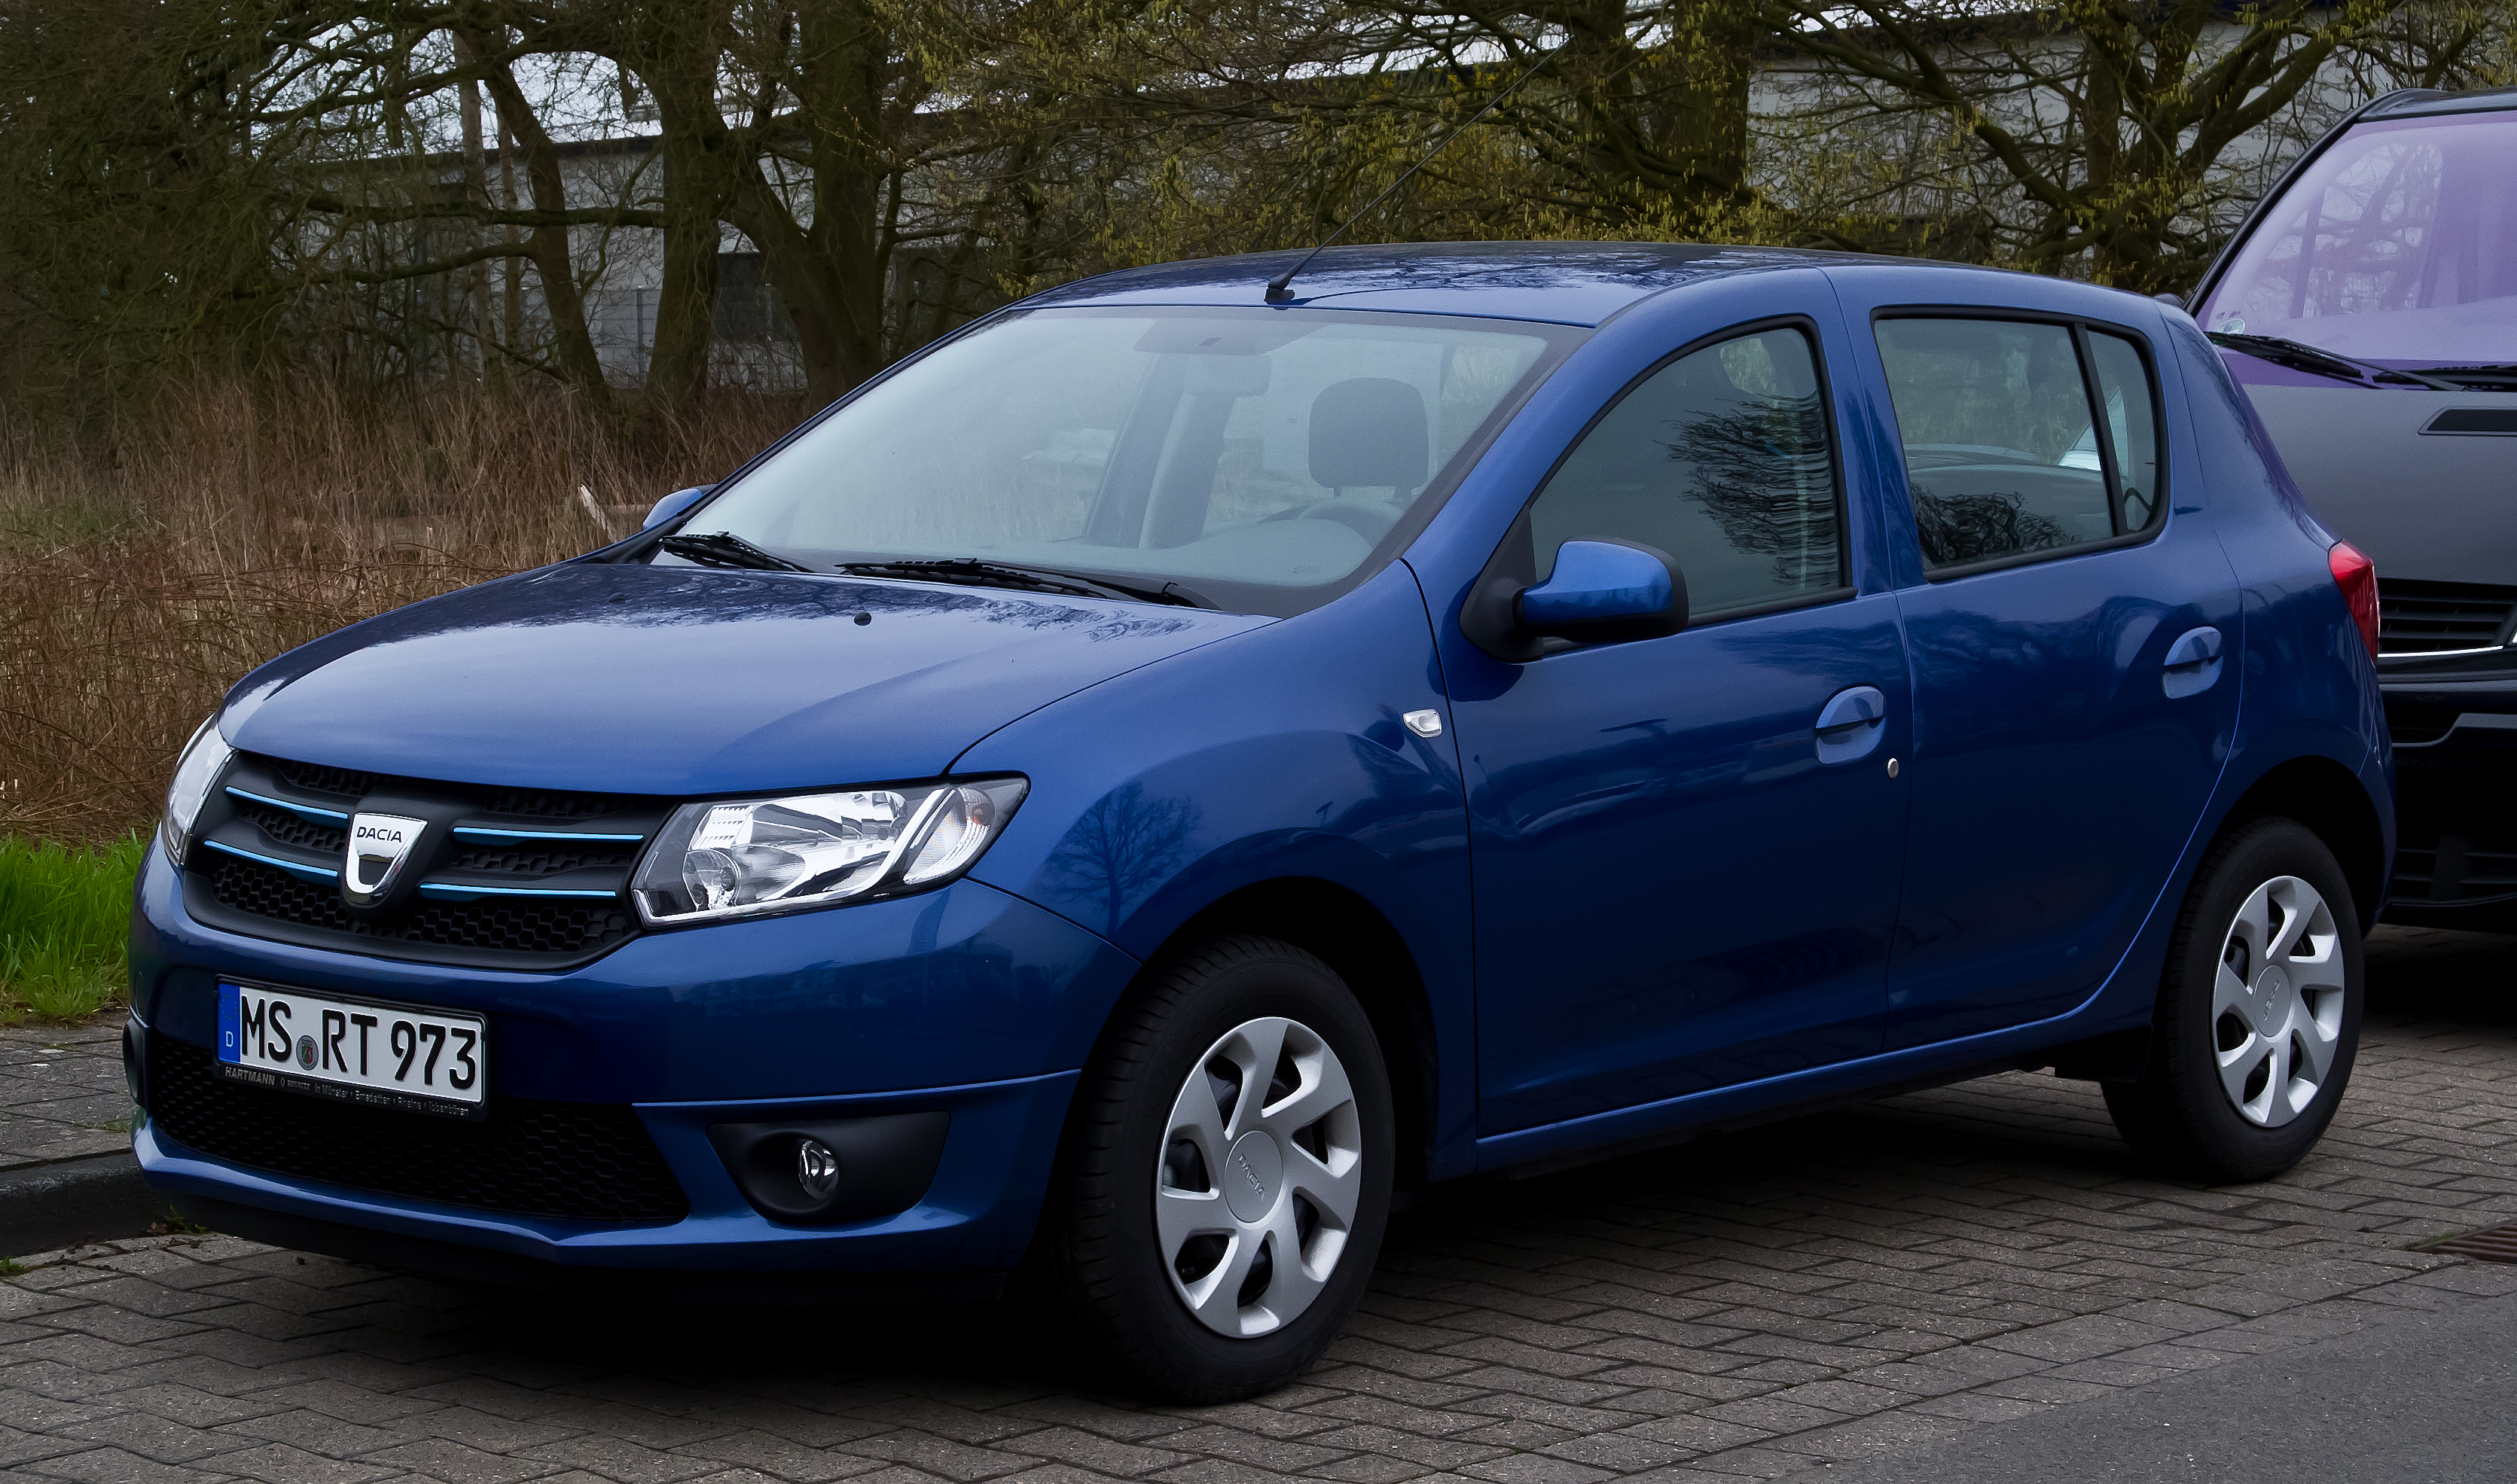 dacia sandero insurance group and review. Black Bedroom Furniture Sets. Home Design Ideas